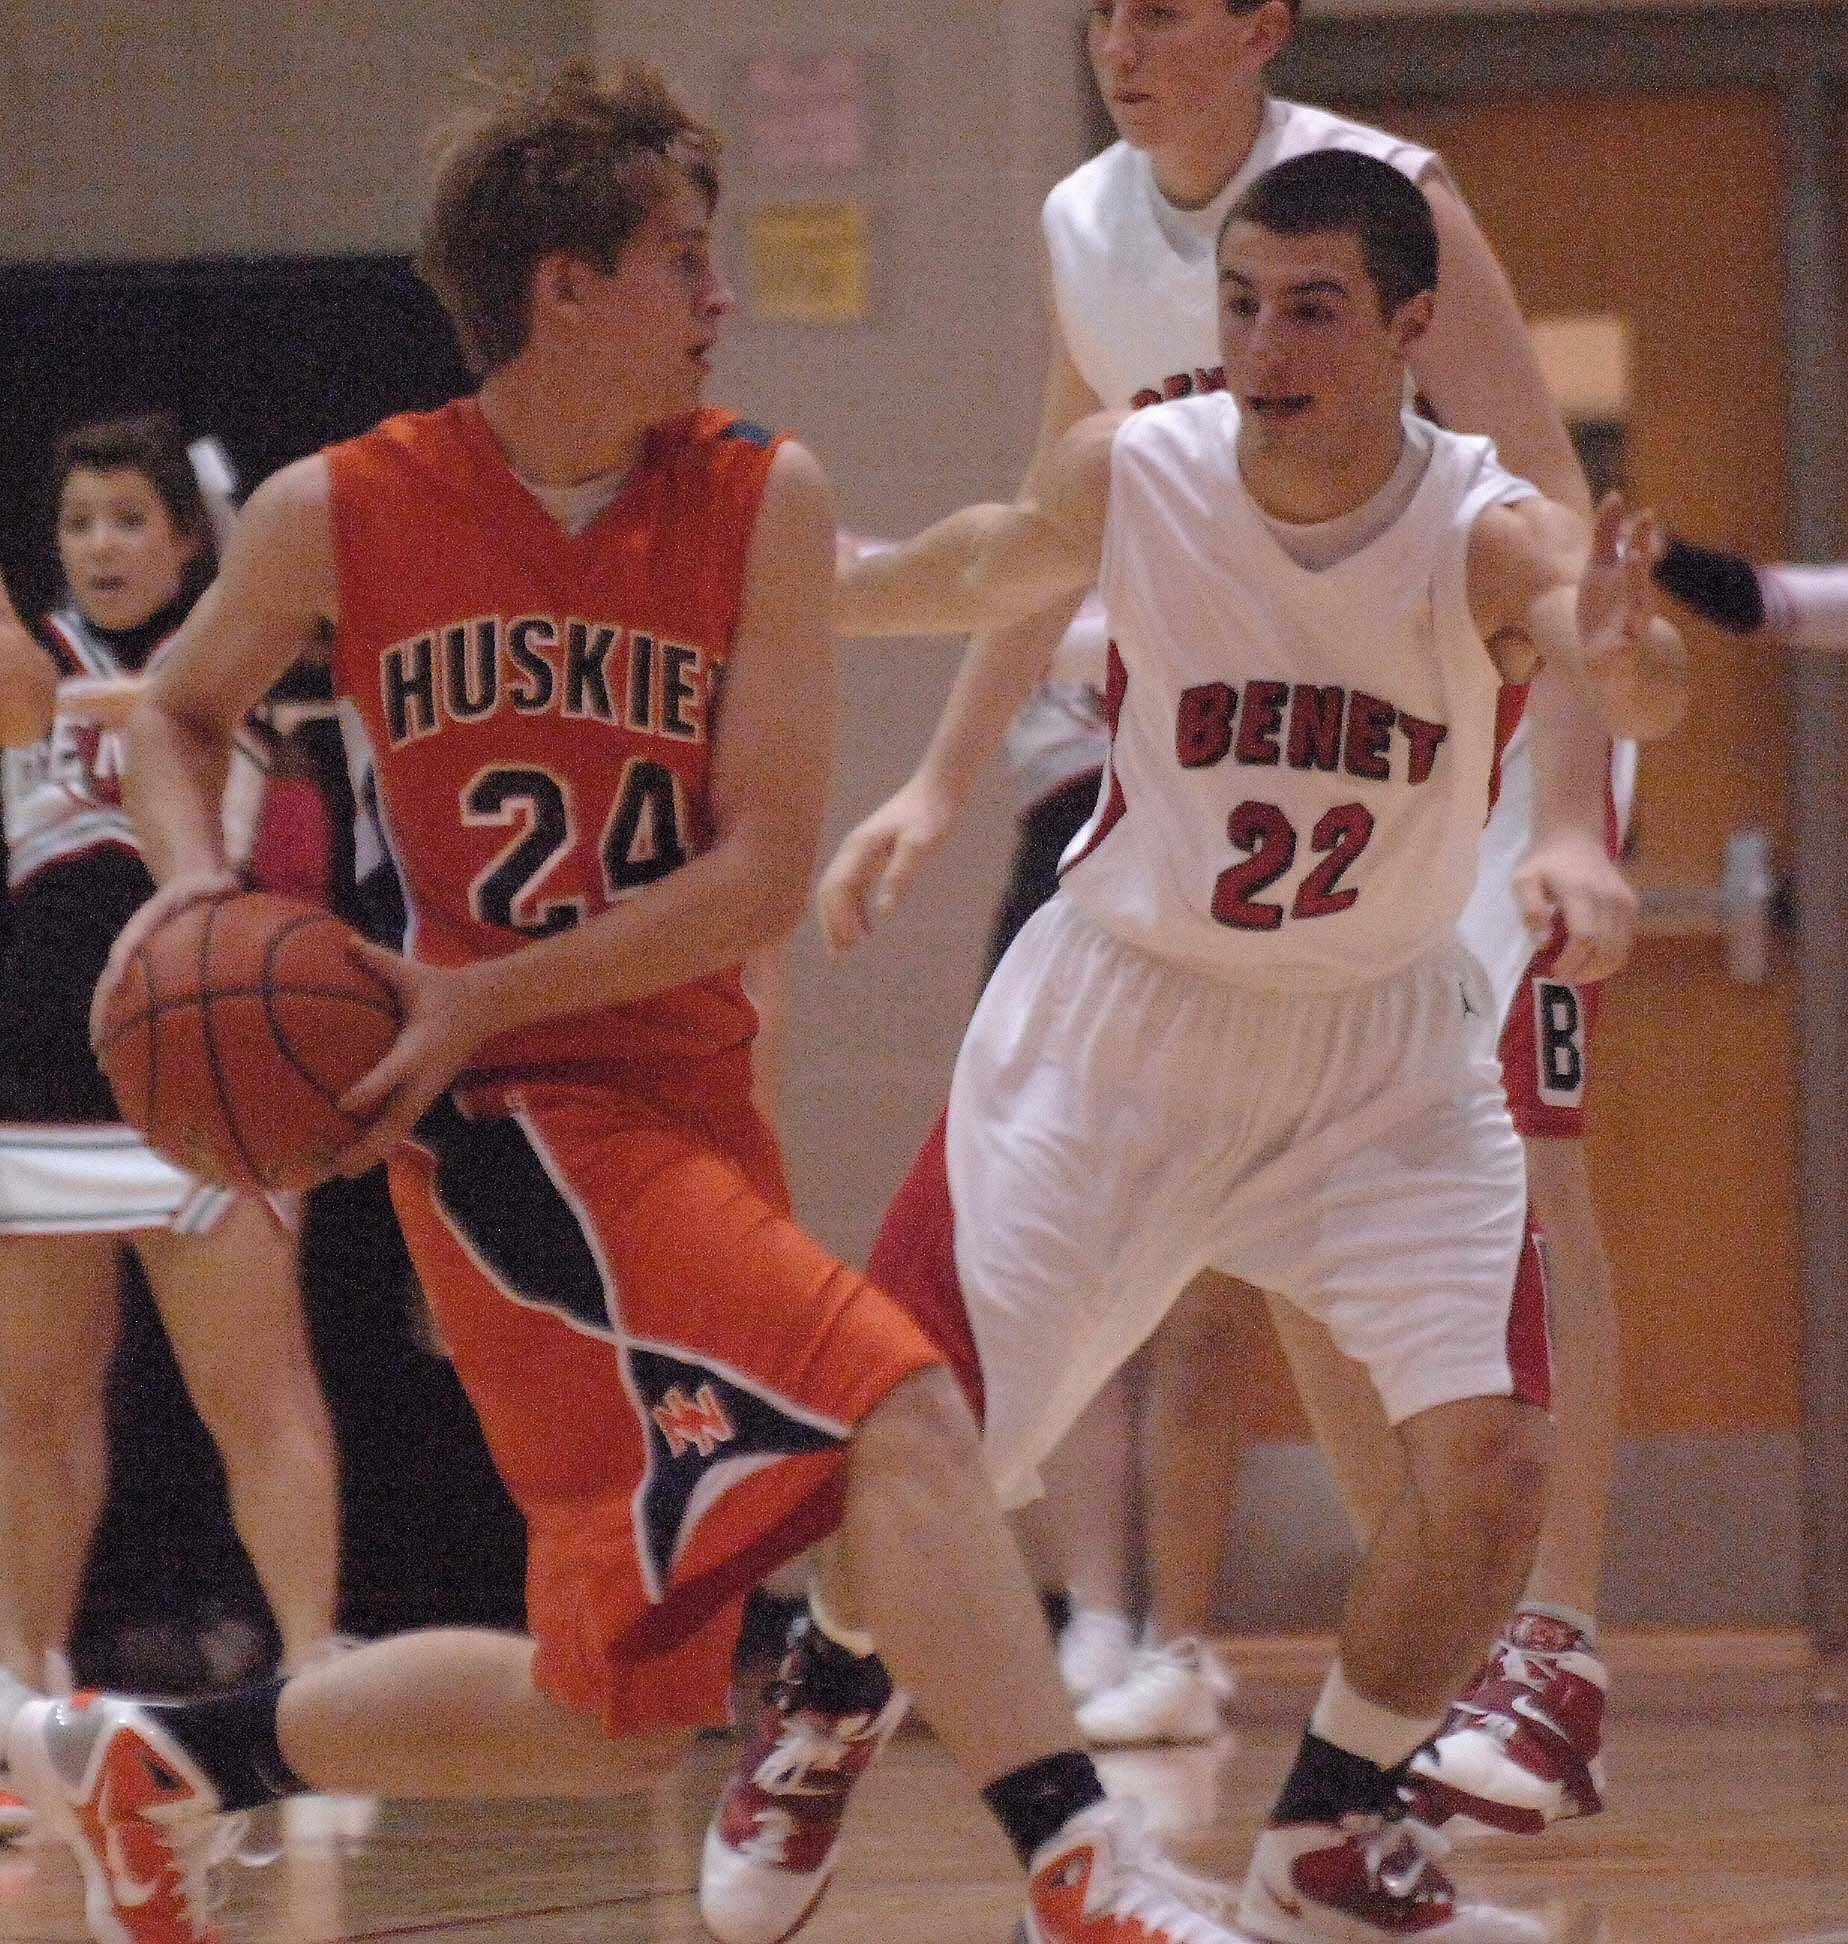 PAUL MICHNA/Pmichna@dailyherald.comKyle Lindberg of Naperville North looks to pass around Matt Parisi of Benet. This took place during the Naperville North vs. Benet boys basketball game in Lisle Tuesday.